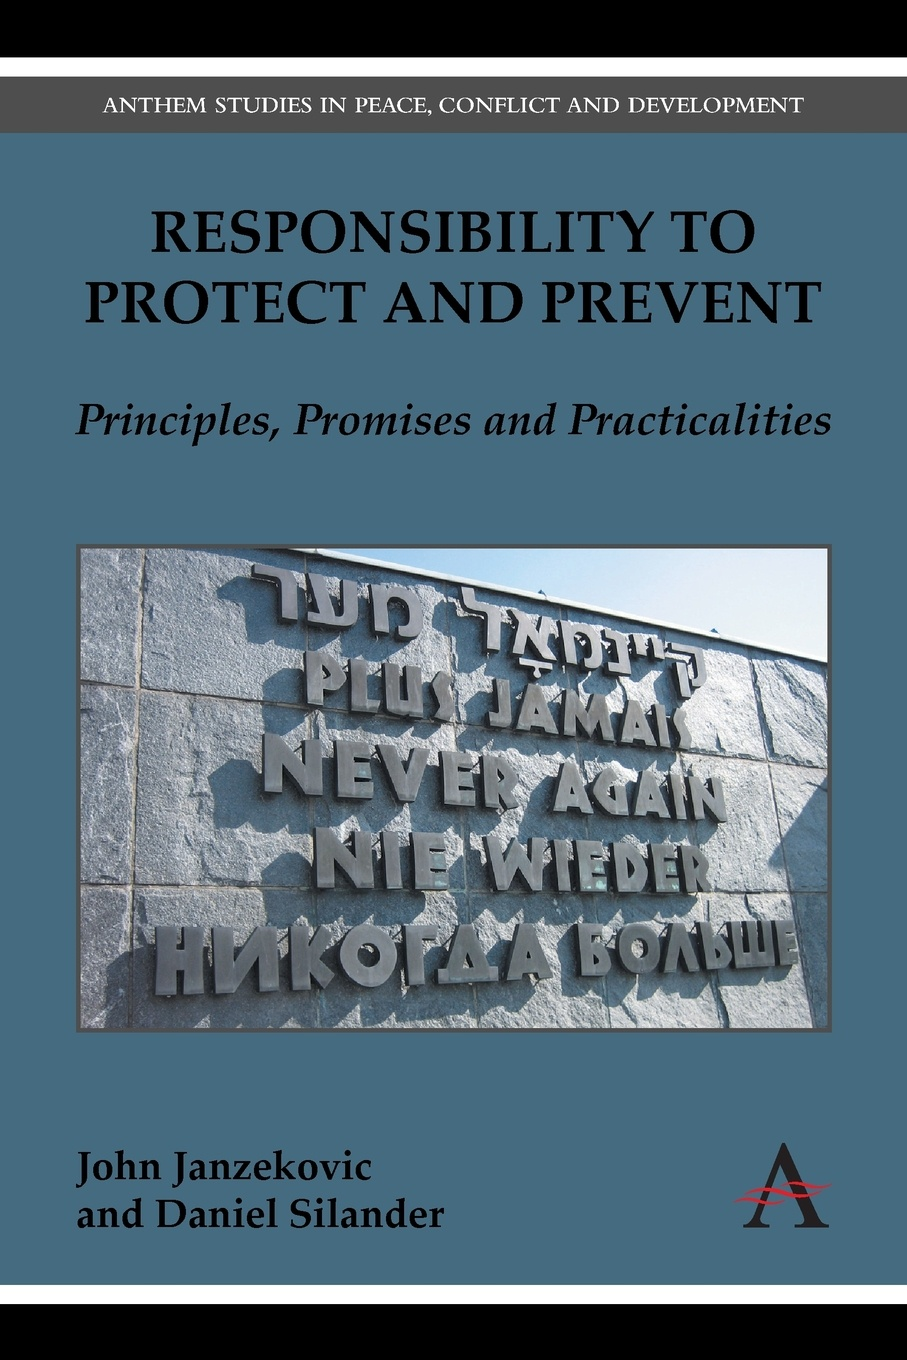 Responsibility to Protect and Prevent. Principles, Promises and Practicalities